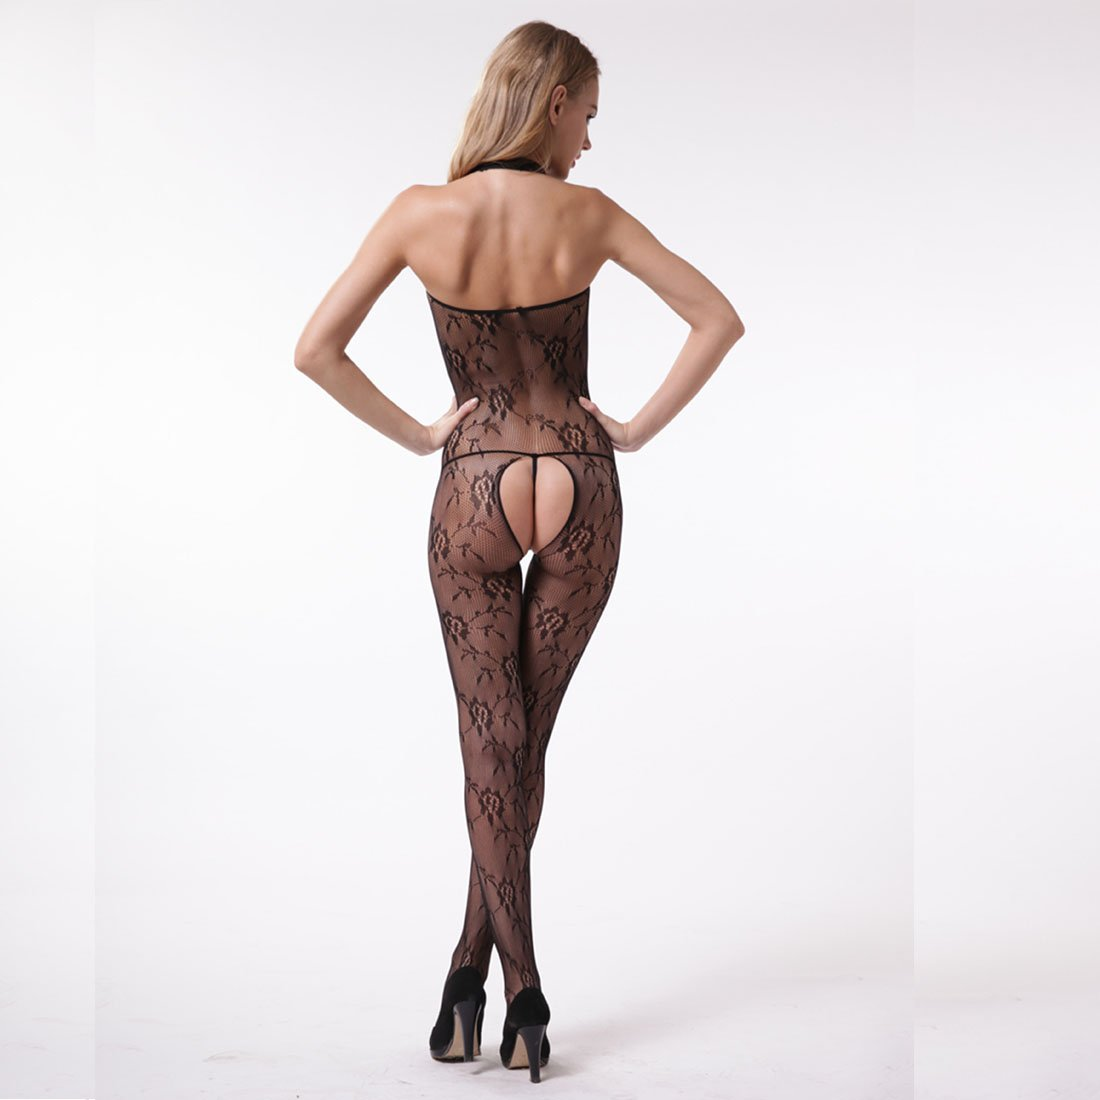 bf14c74d8 Reignet Women s Sexy Open Crotch Mesh Fishnet Lace Bodystocking Babydoll  Lingerie Set